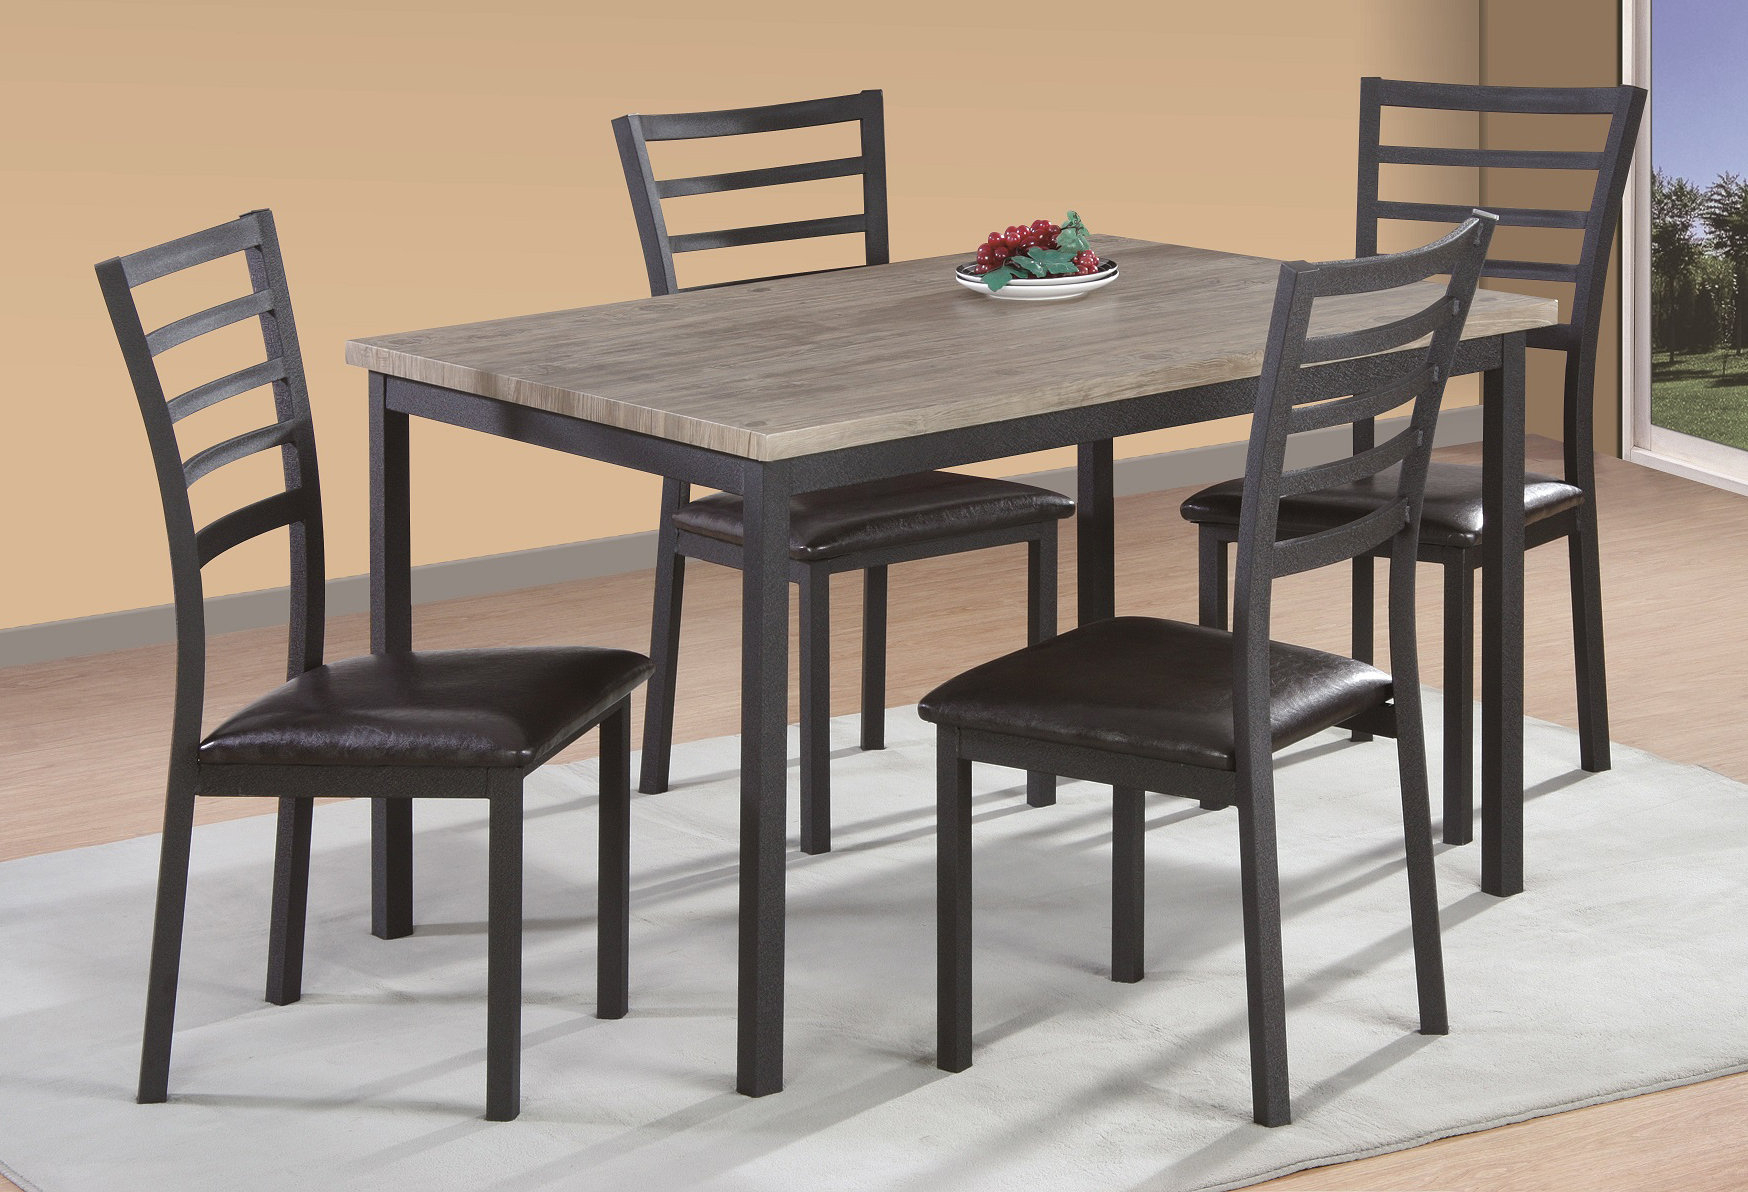 Frankie 5 Piece Dining Set Regarding Recent Turnalar 5 Piece Dining Sets (View 11 of 20)